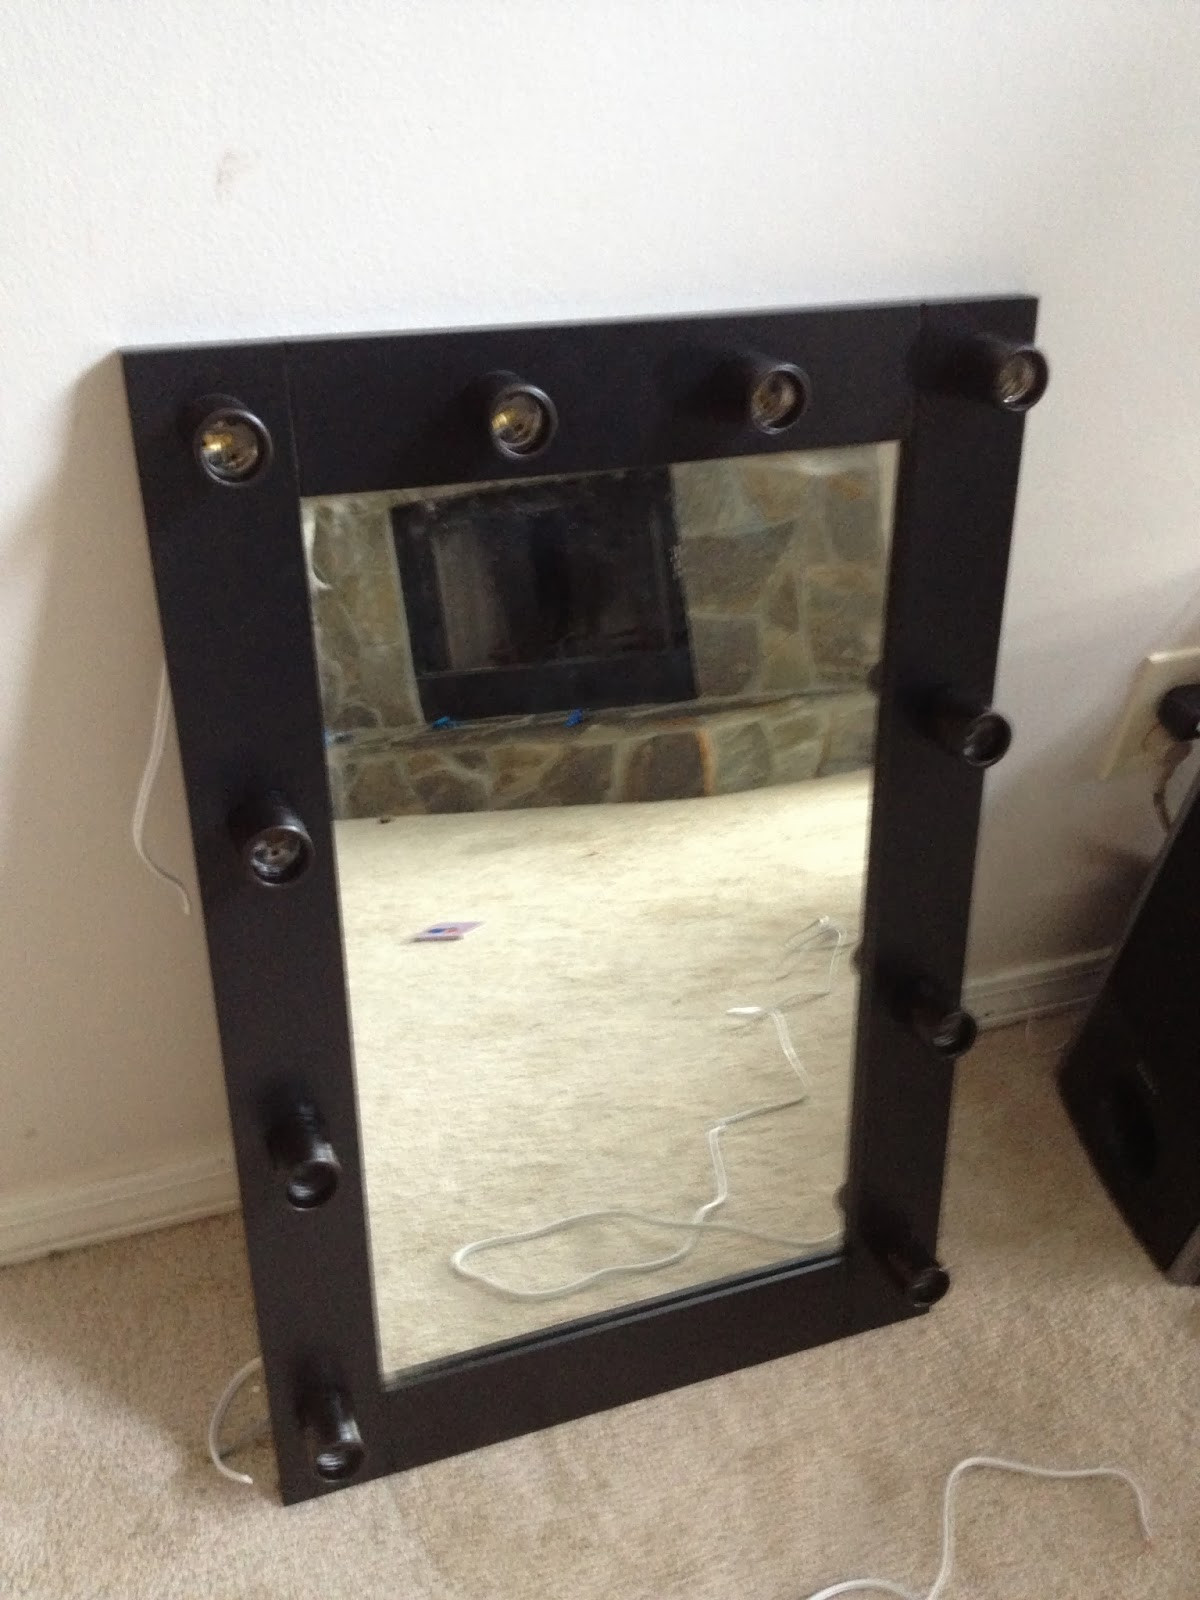 Best ideas about DIY Lighted Mirror . Save or Pin Beauty Fashion and Lifestyle Blog DIY Lighted Makeup Now.